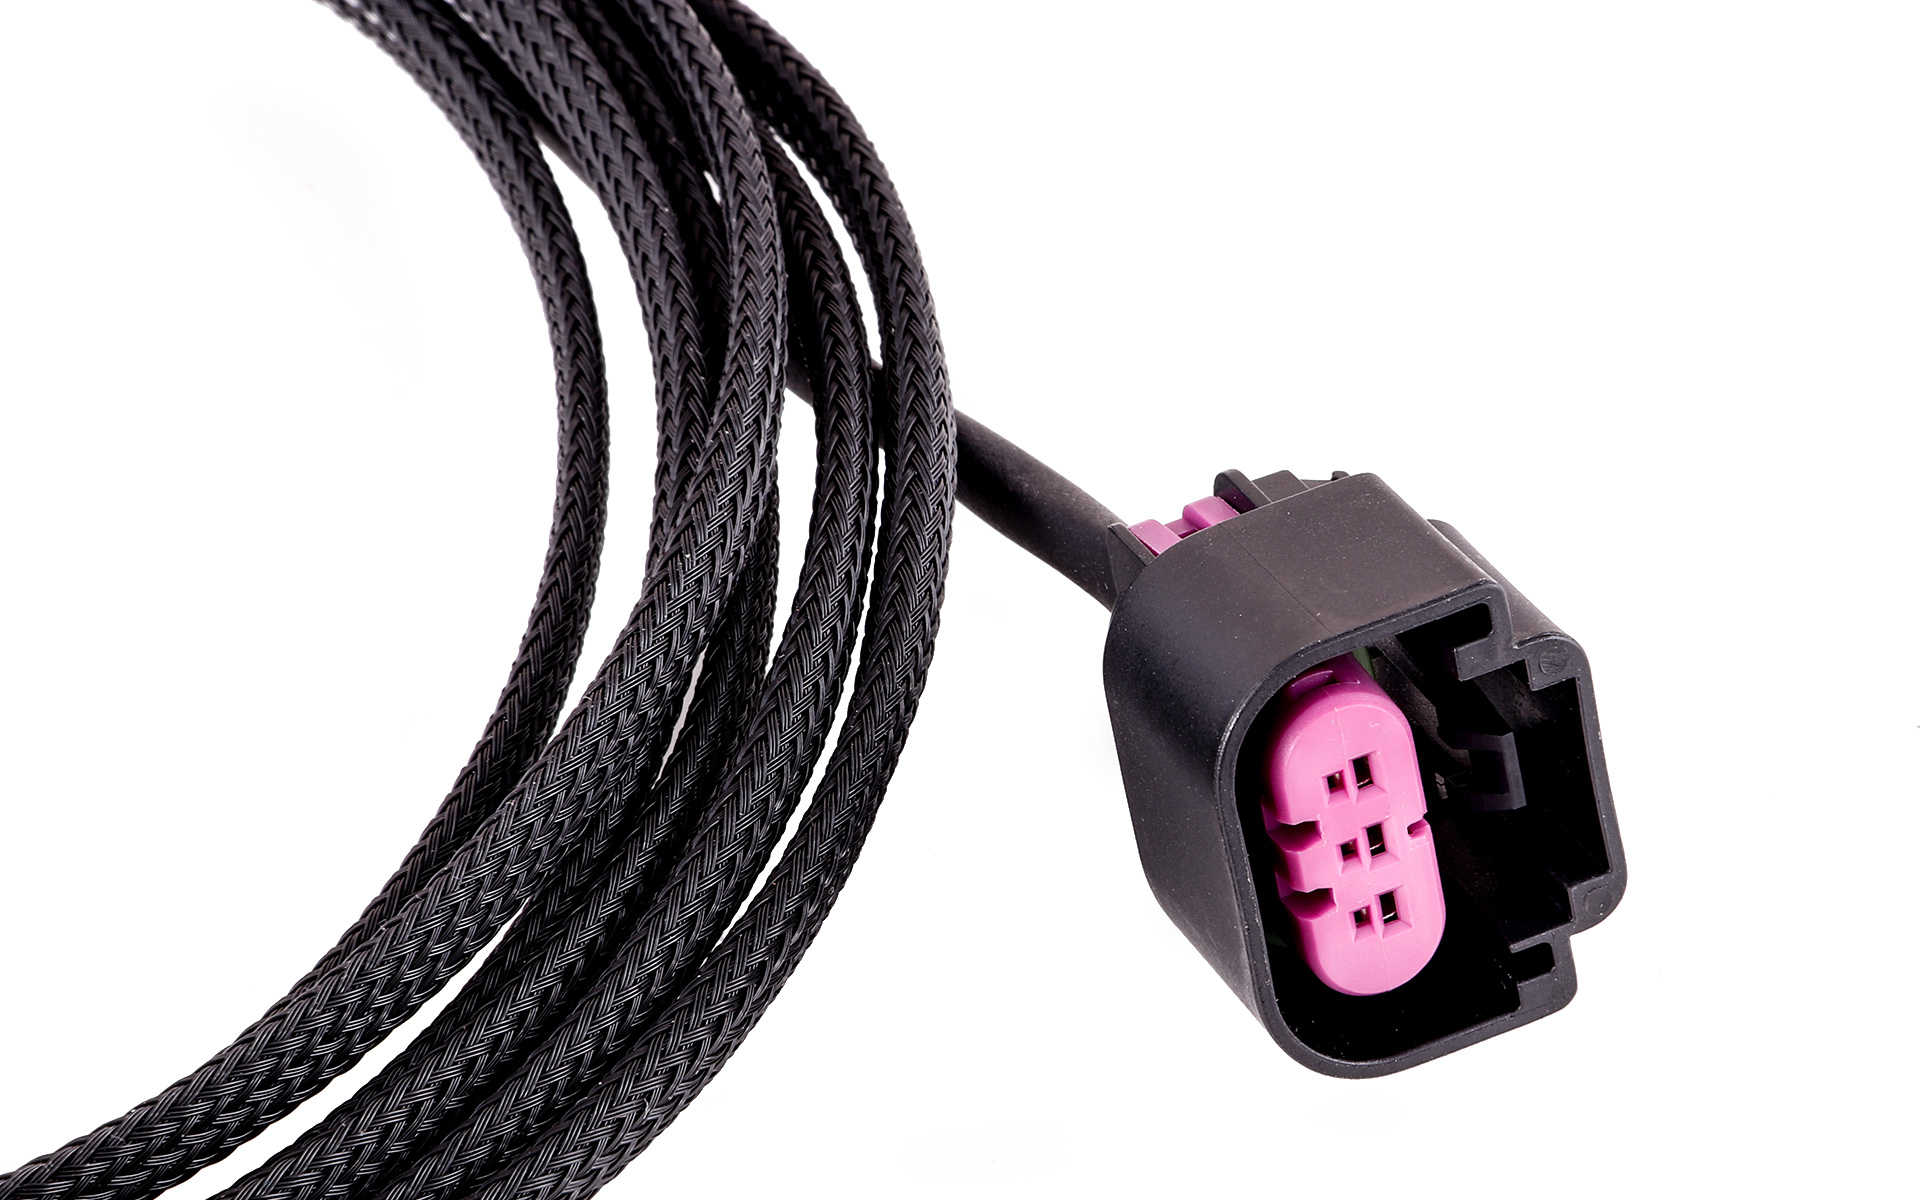 Plugin-ECU flex fuel cable